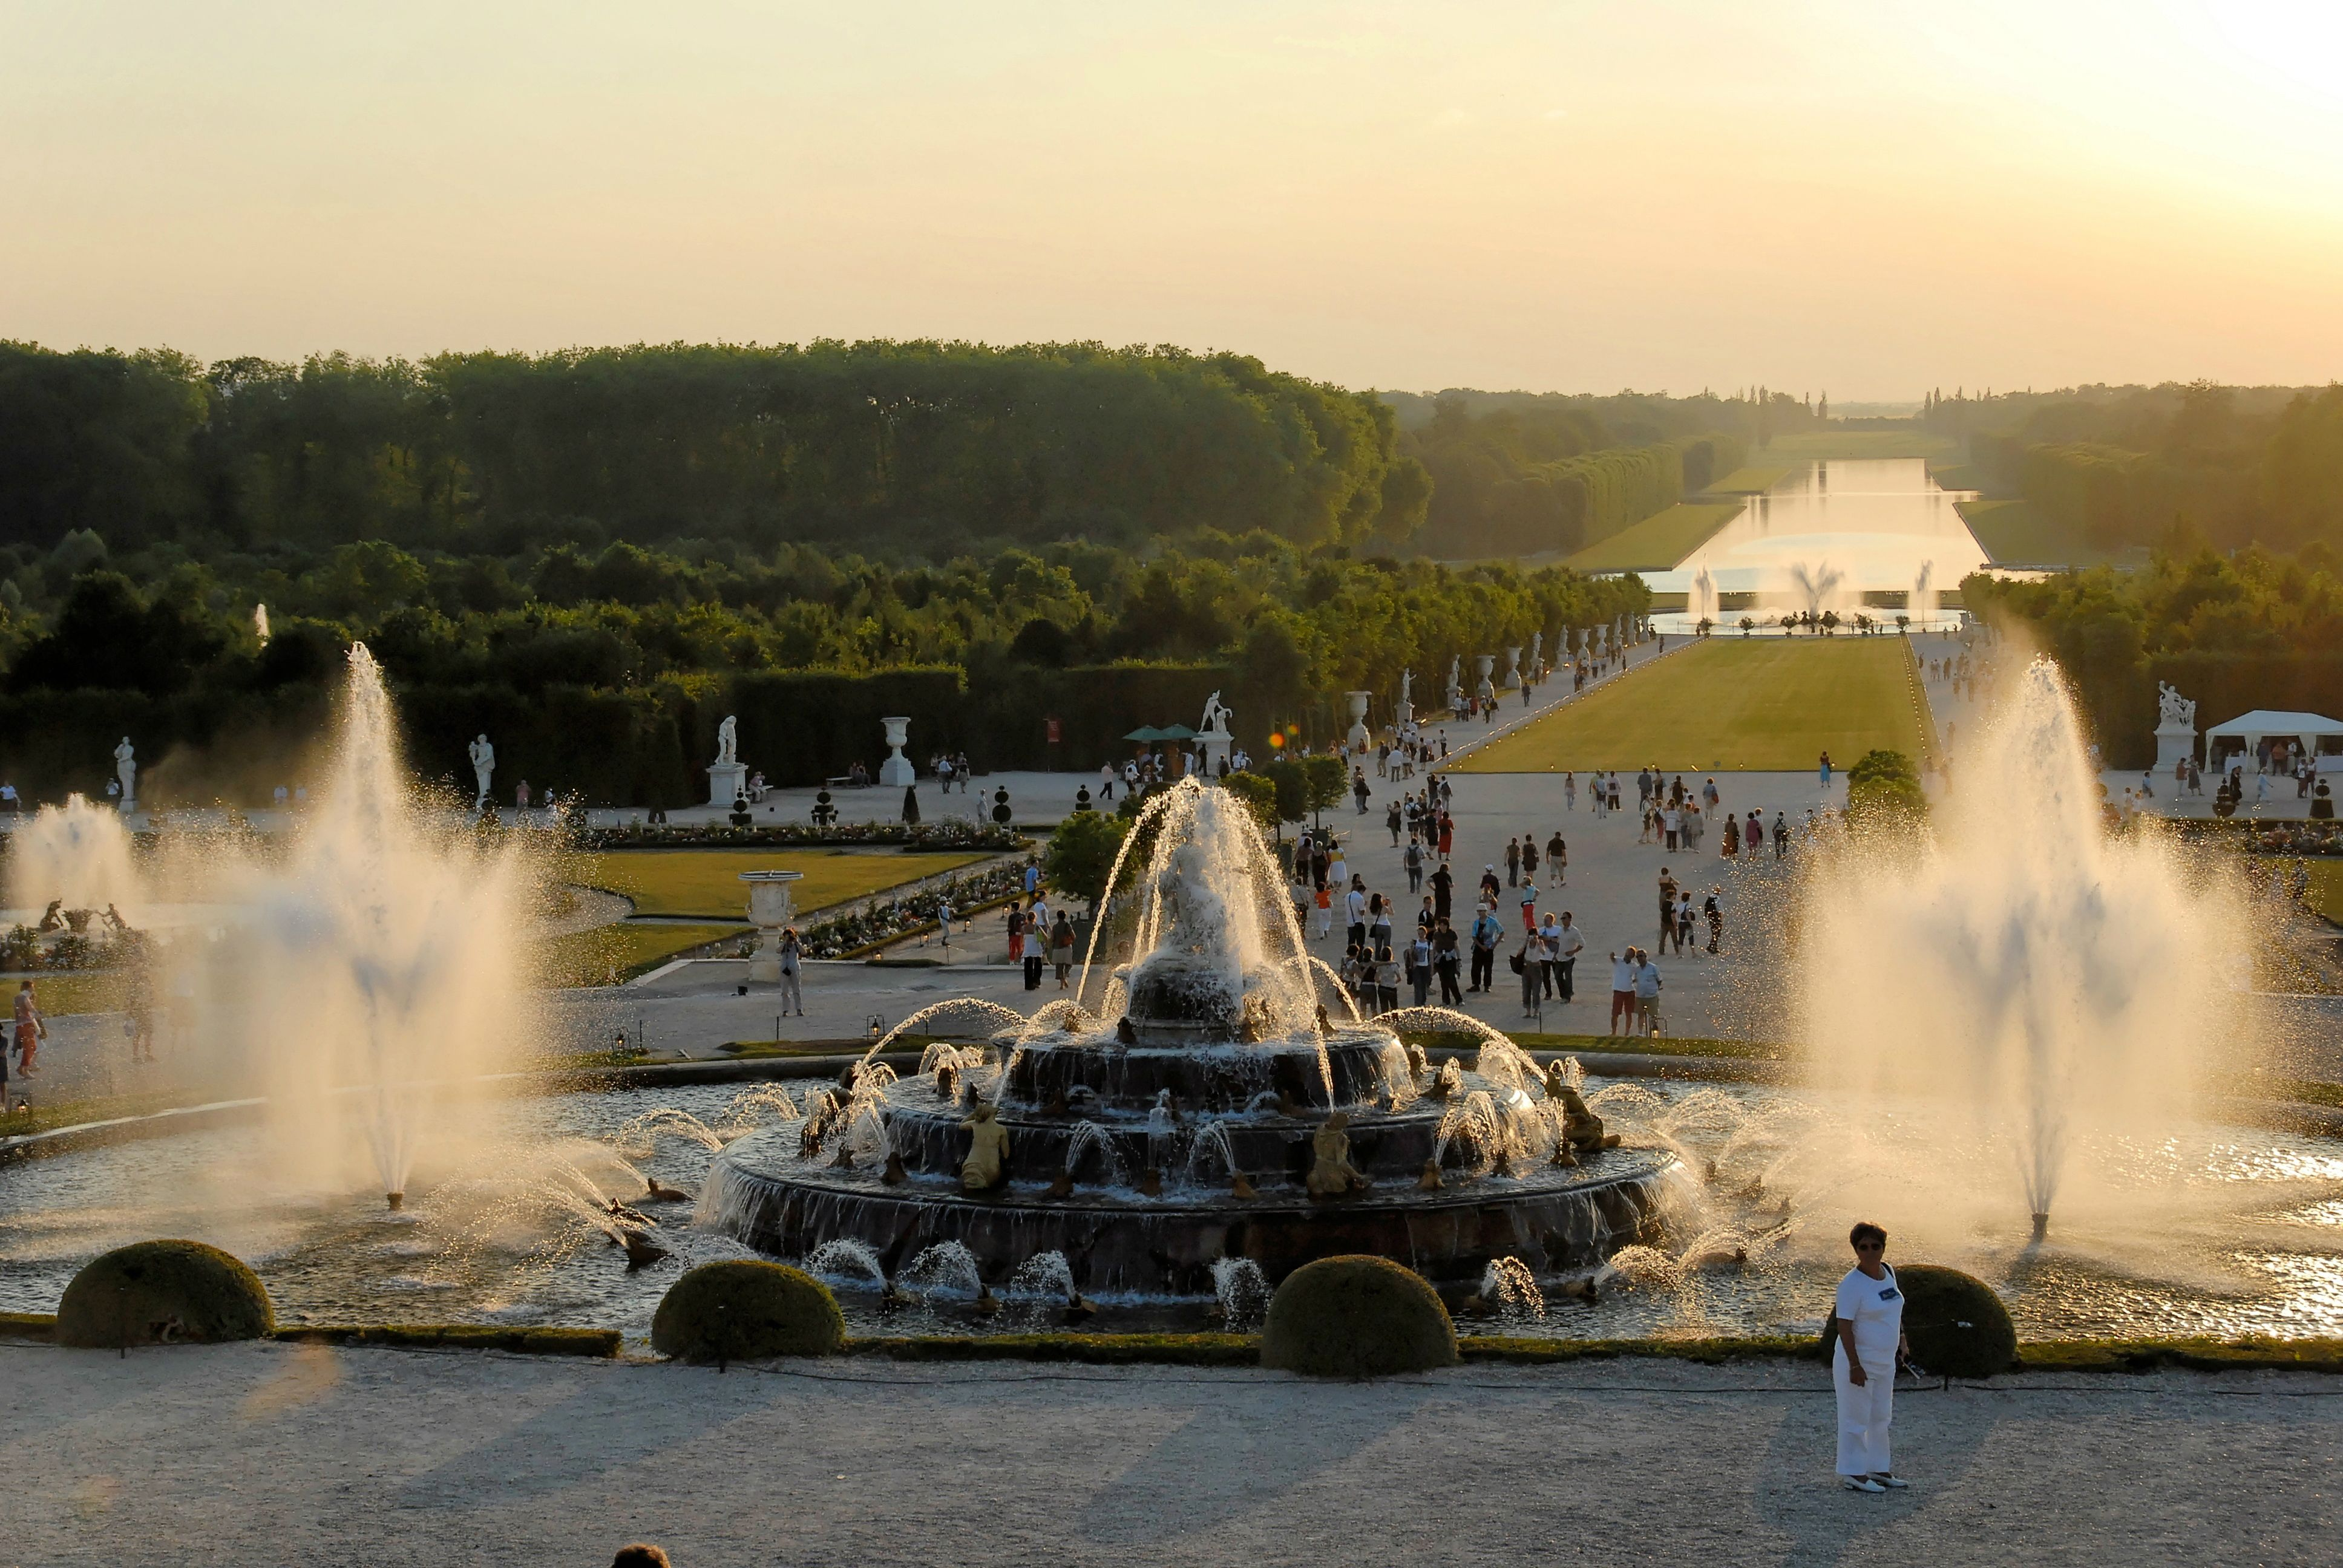 the magnificent spectacle of the musical fountains show  versailles  palace  france